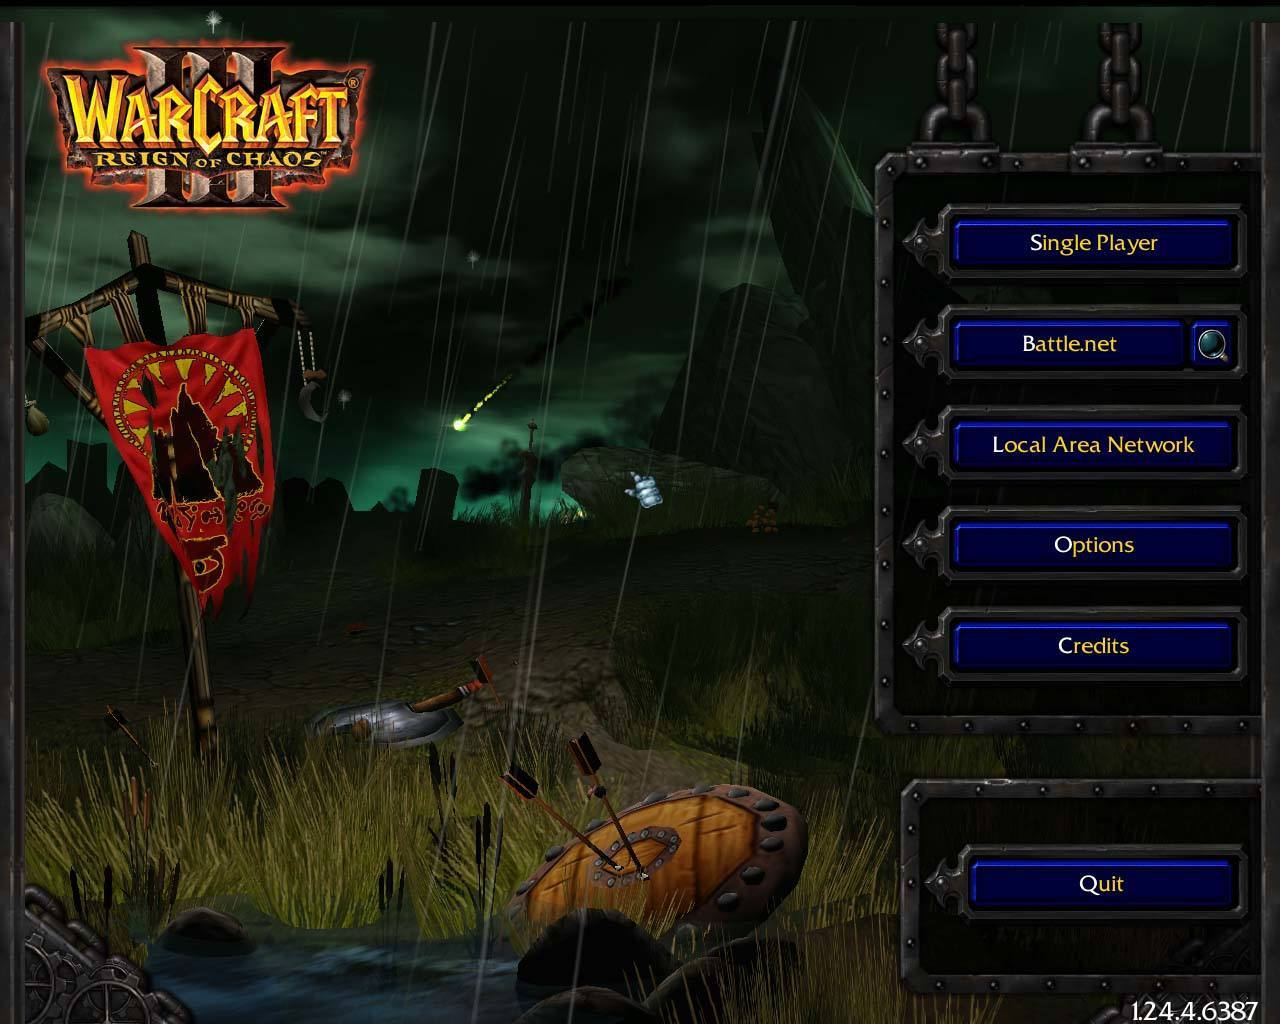 Sex patch warcraft iii reign of chaos nsfw gallery